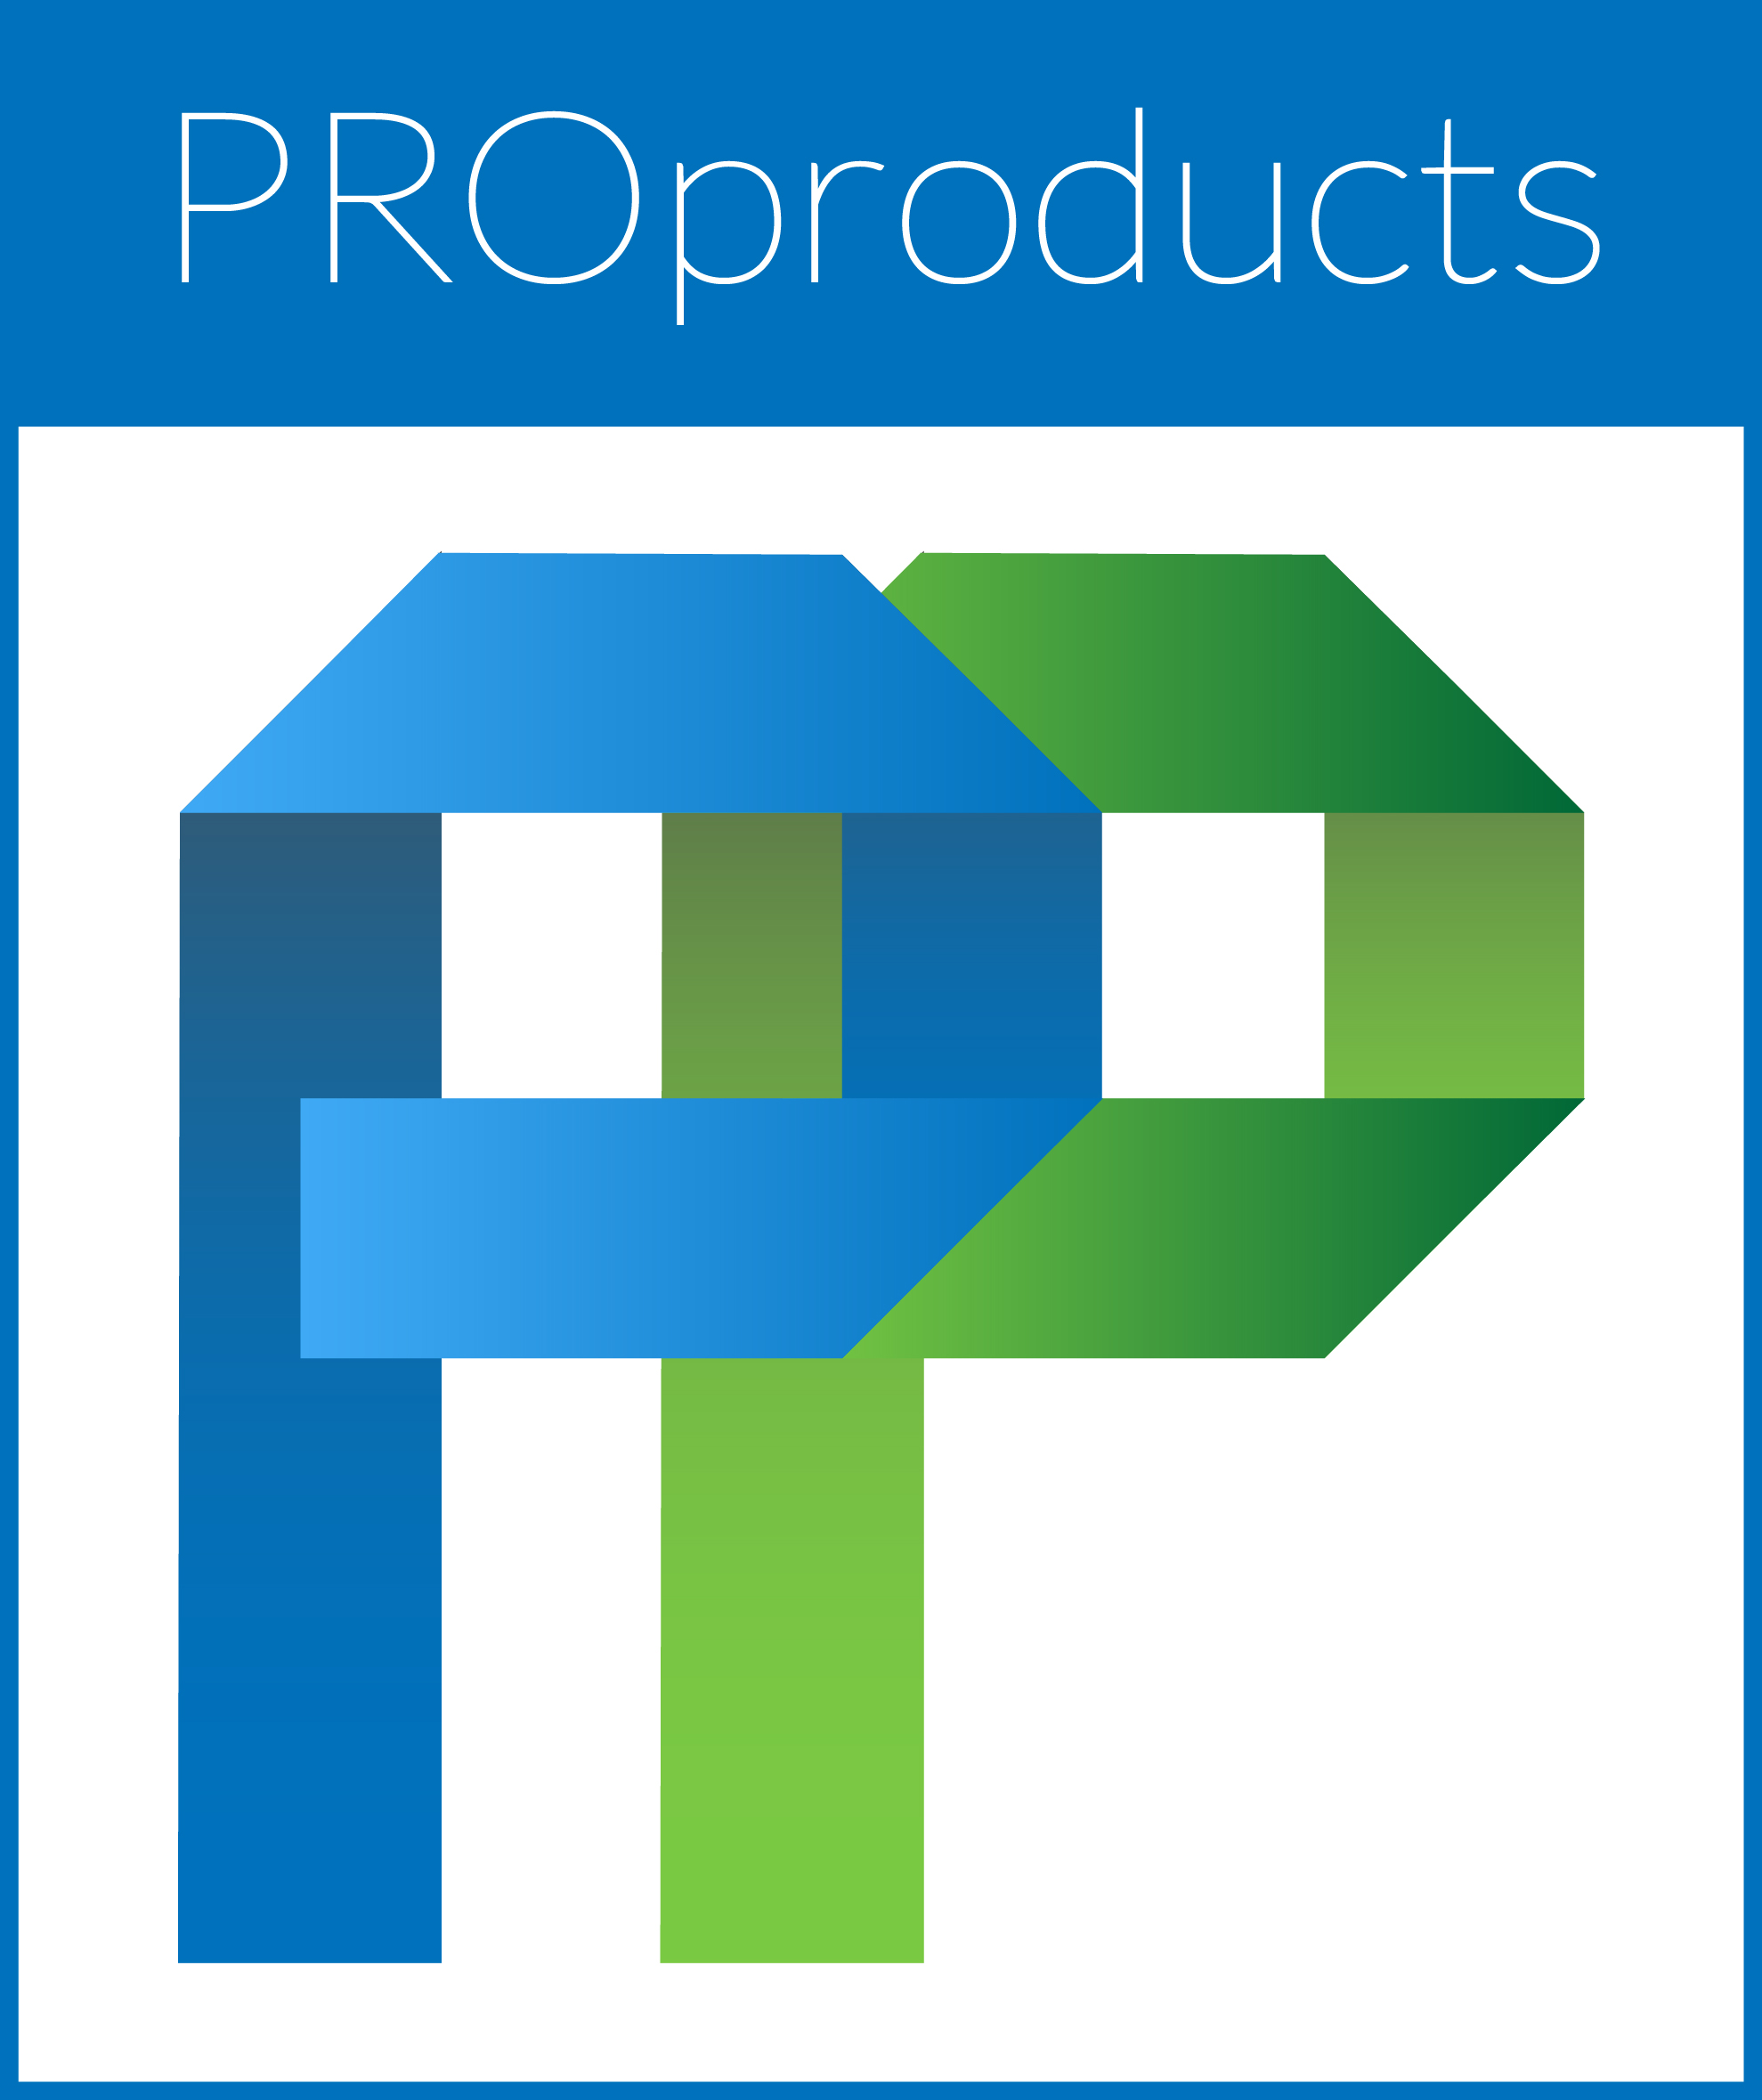 Logo Design by Yassine Zanina - Entry No. 70 in the Logo Design Contest Fun yet Professional Logo Design for ProProducts.